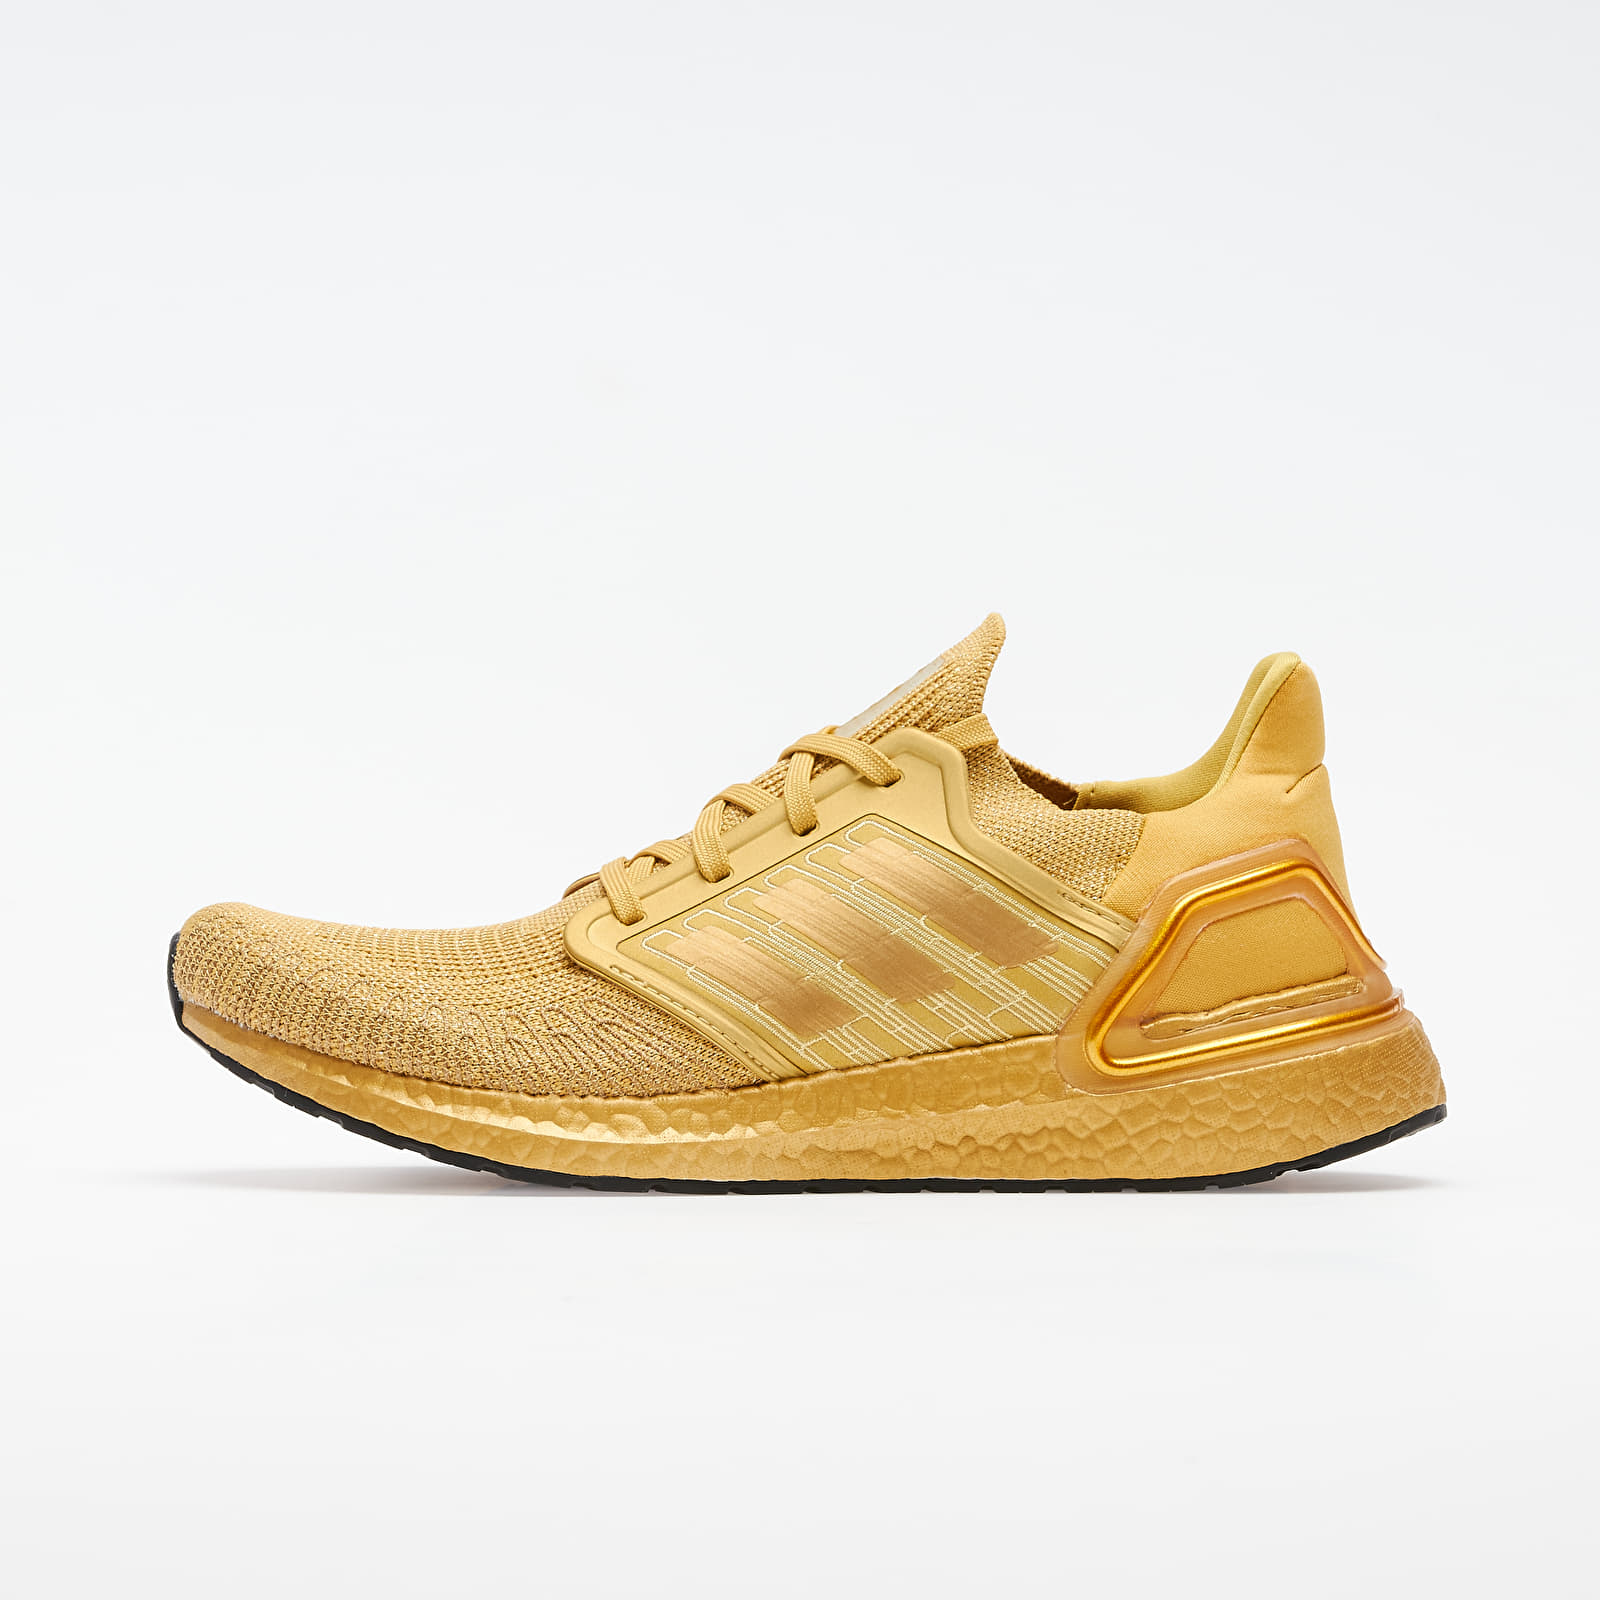 Männer adidas UltraBOOST 20 Gold Metalic/ Gold Metalic/ Gold Metalic